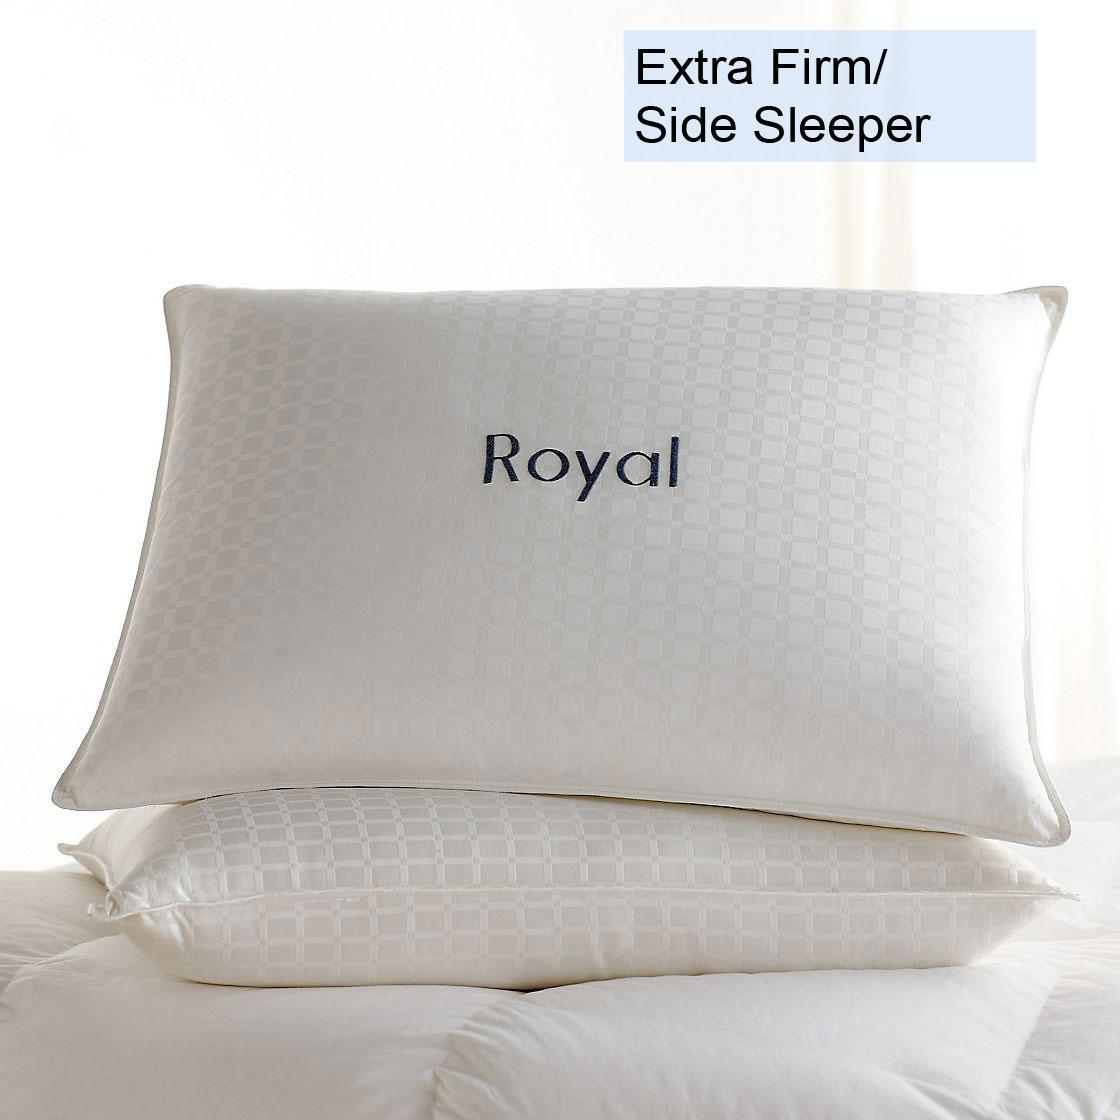 Legends® Luxury Royal Hungarian White Goose Down Extra Firm Density Pillow